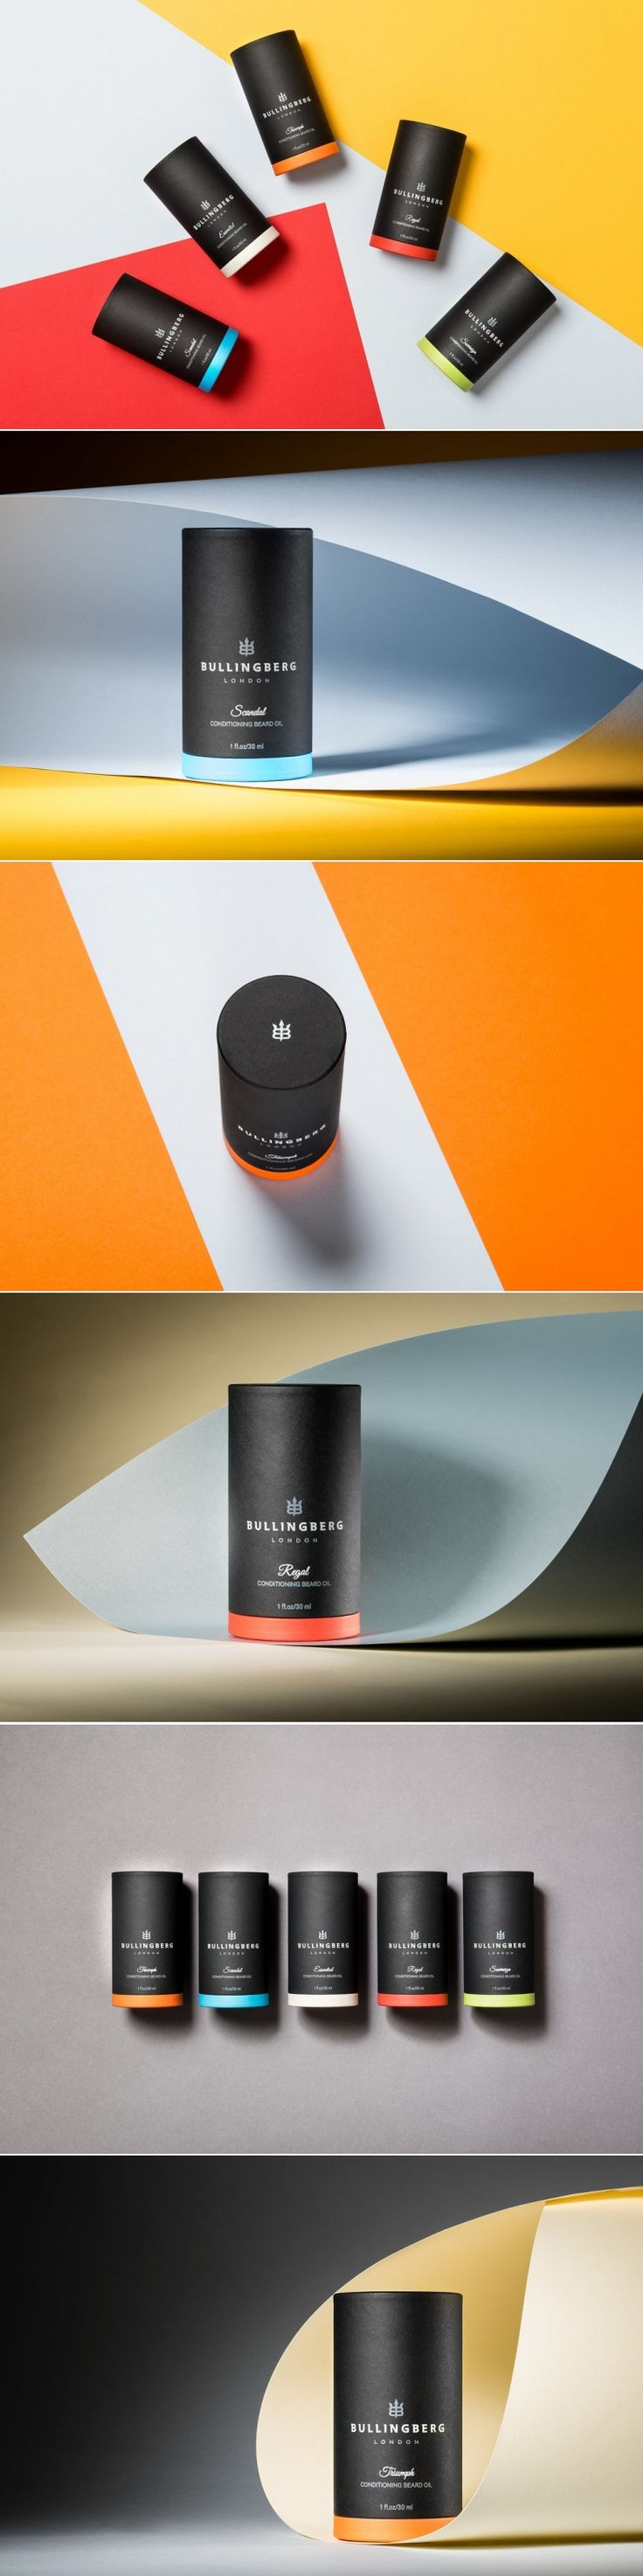 This Men's Grooming Line Comes With a Lux High-End Feeling — The Dieline | Packaging & Branding Design & Innovation News